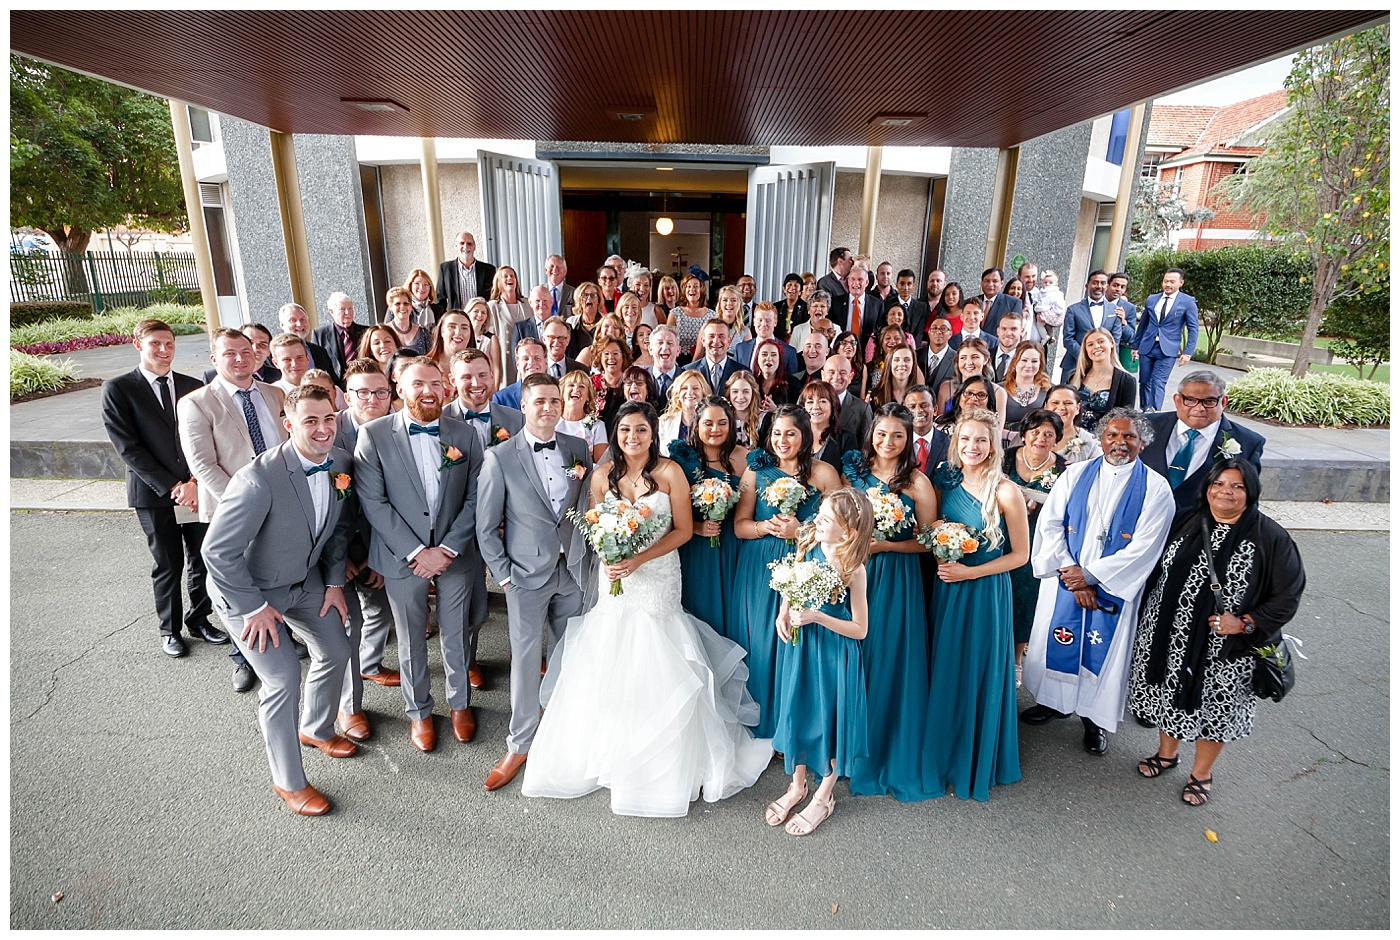 Wedding guests group photo at Bride and Groom at Wesley College Church in South Perth